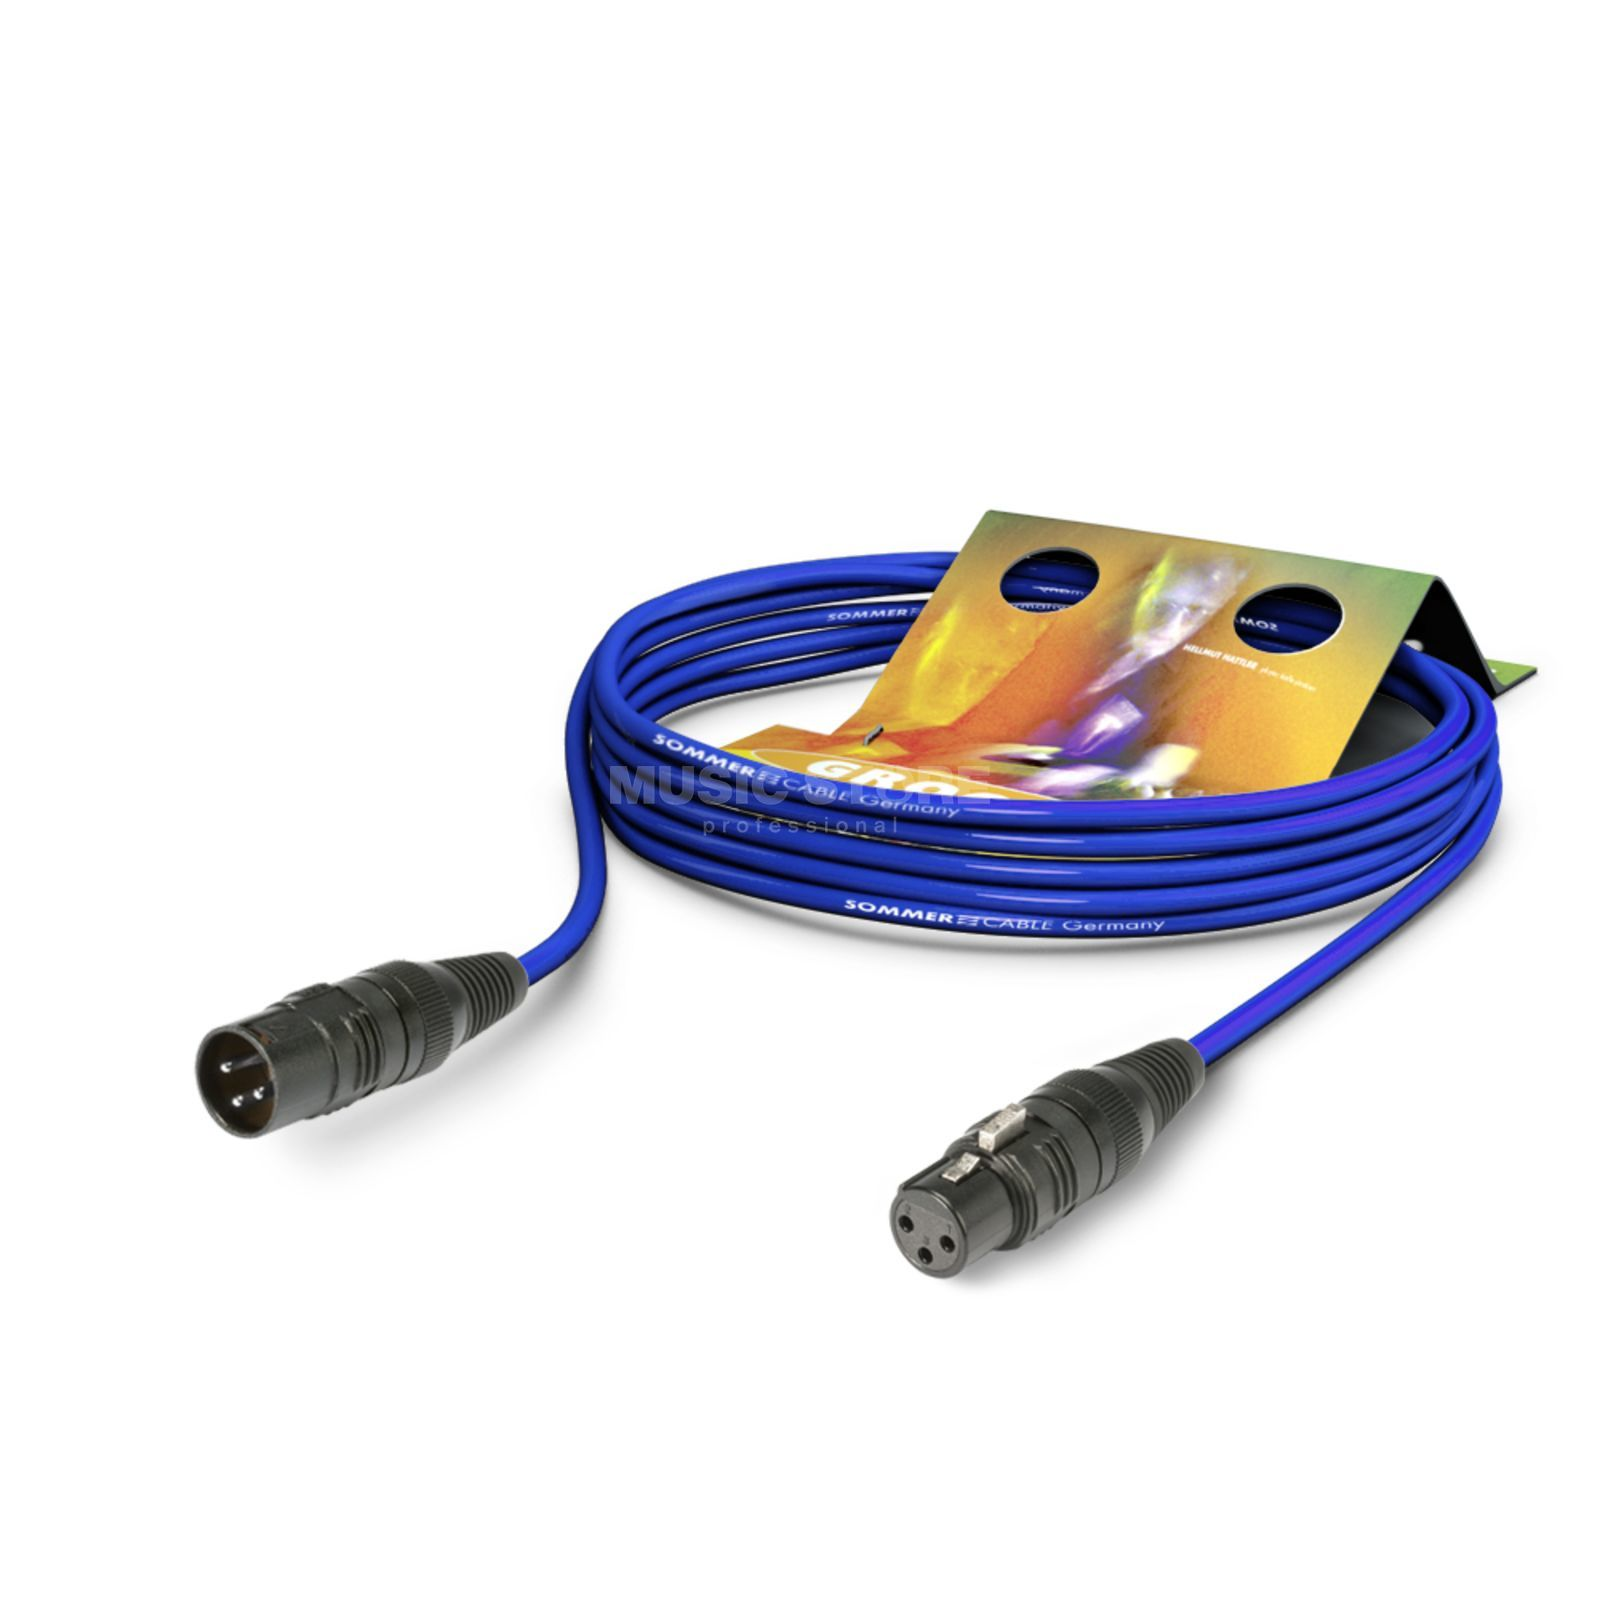 Sommer Cable Mikrofonkabel SC-STAGE 1m blau HICON, SGCE-0100 BL Produktbild